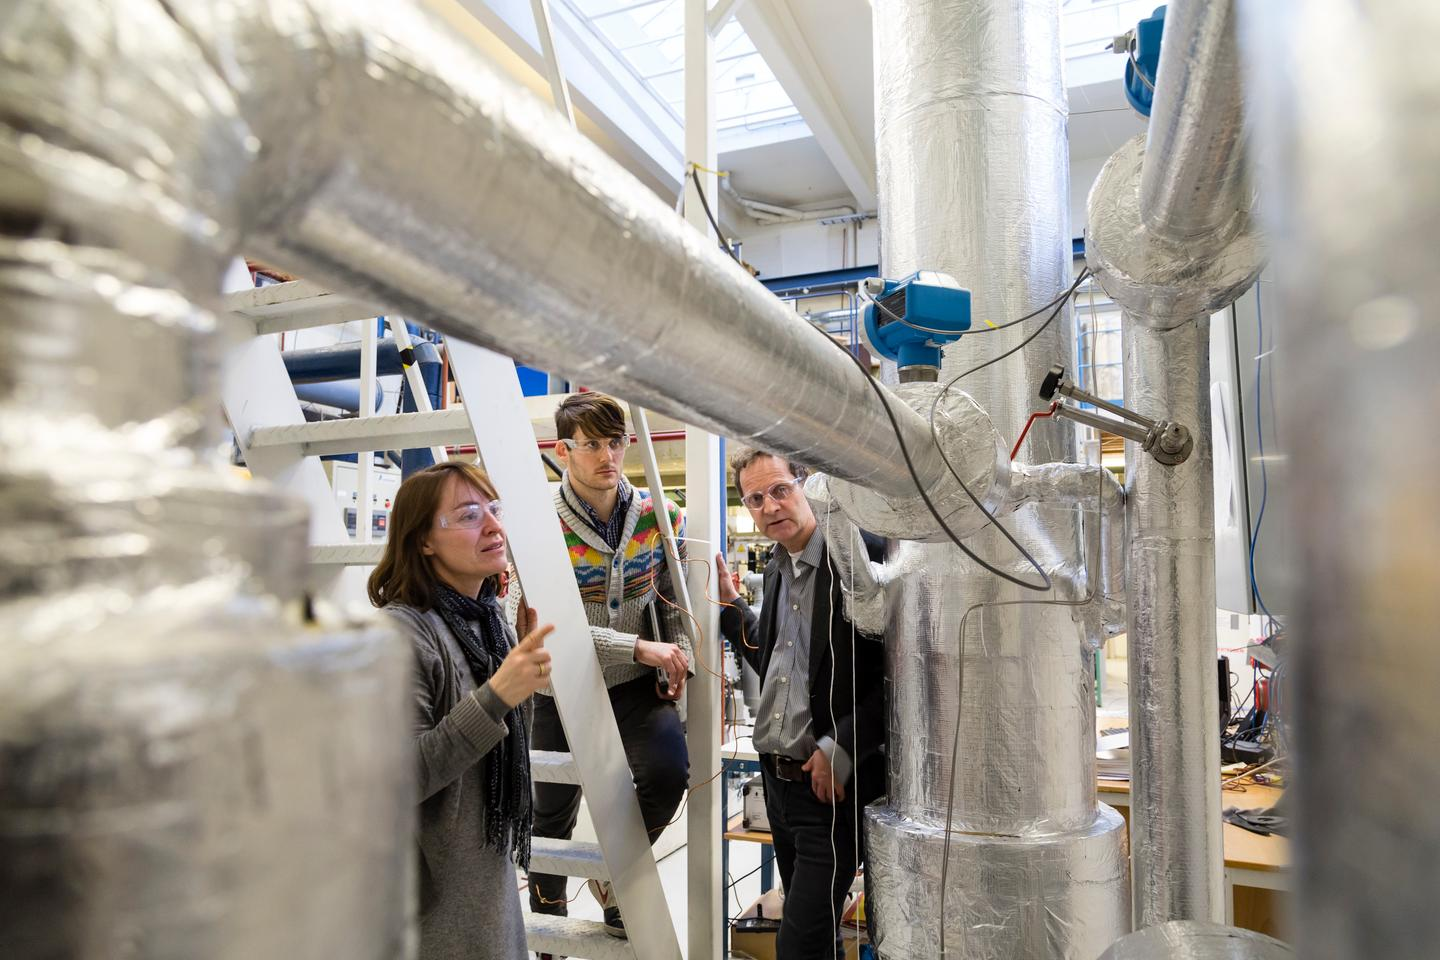 """Core participants in the """"Cold CO2 Capture"""" project discuss their results. From the left; chief scientist Petter Nekså, research scientist Kristin Jordal and David Berstad, MSc, all of SINTEF Energy Research (Photo: SINTEF/Thor Nielsen)"""